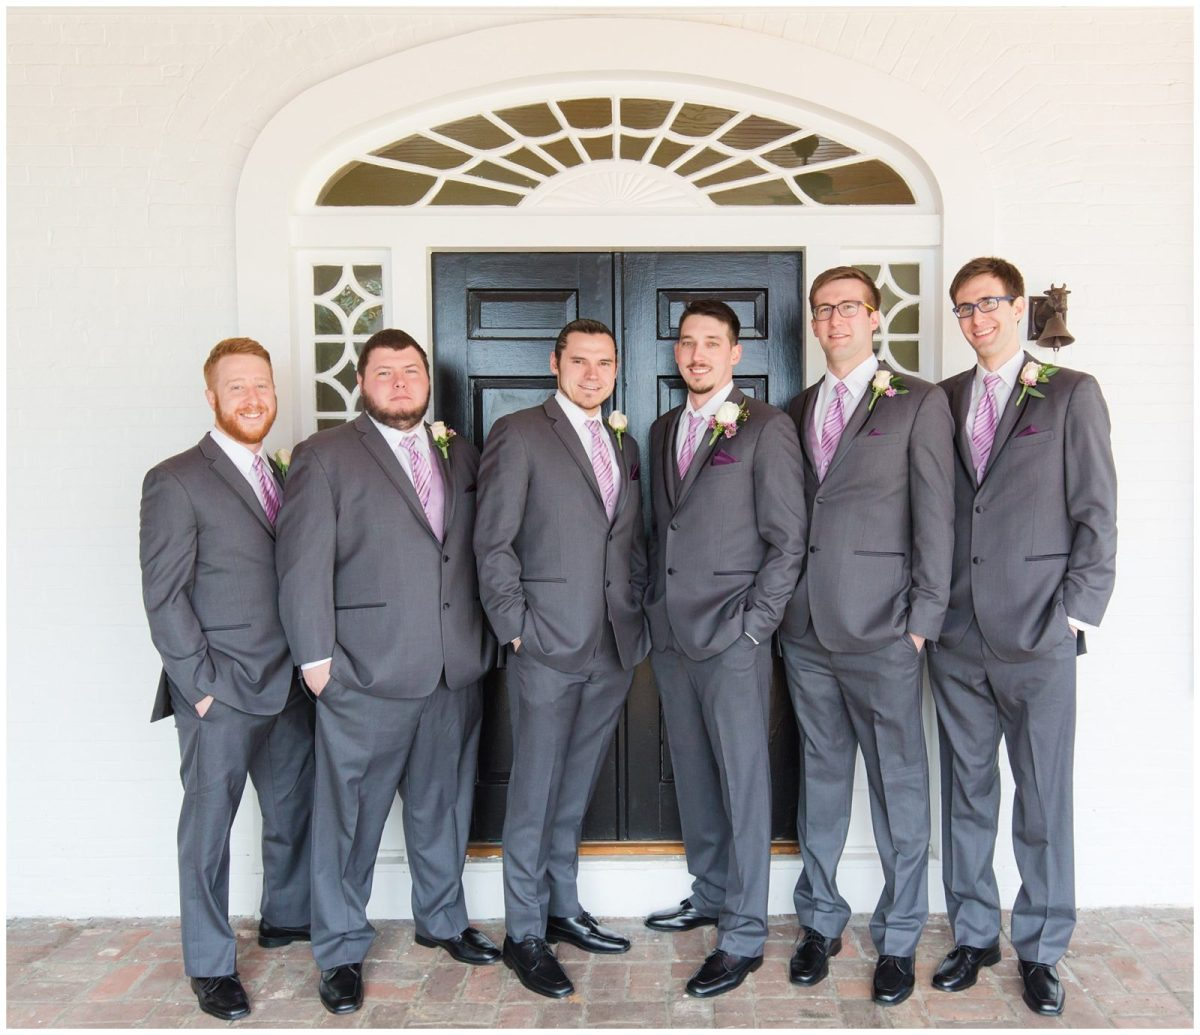 Groom and Groomsmen Wedding Photos at Ashford Acres Inn in Cynthiana, Kentucky.